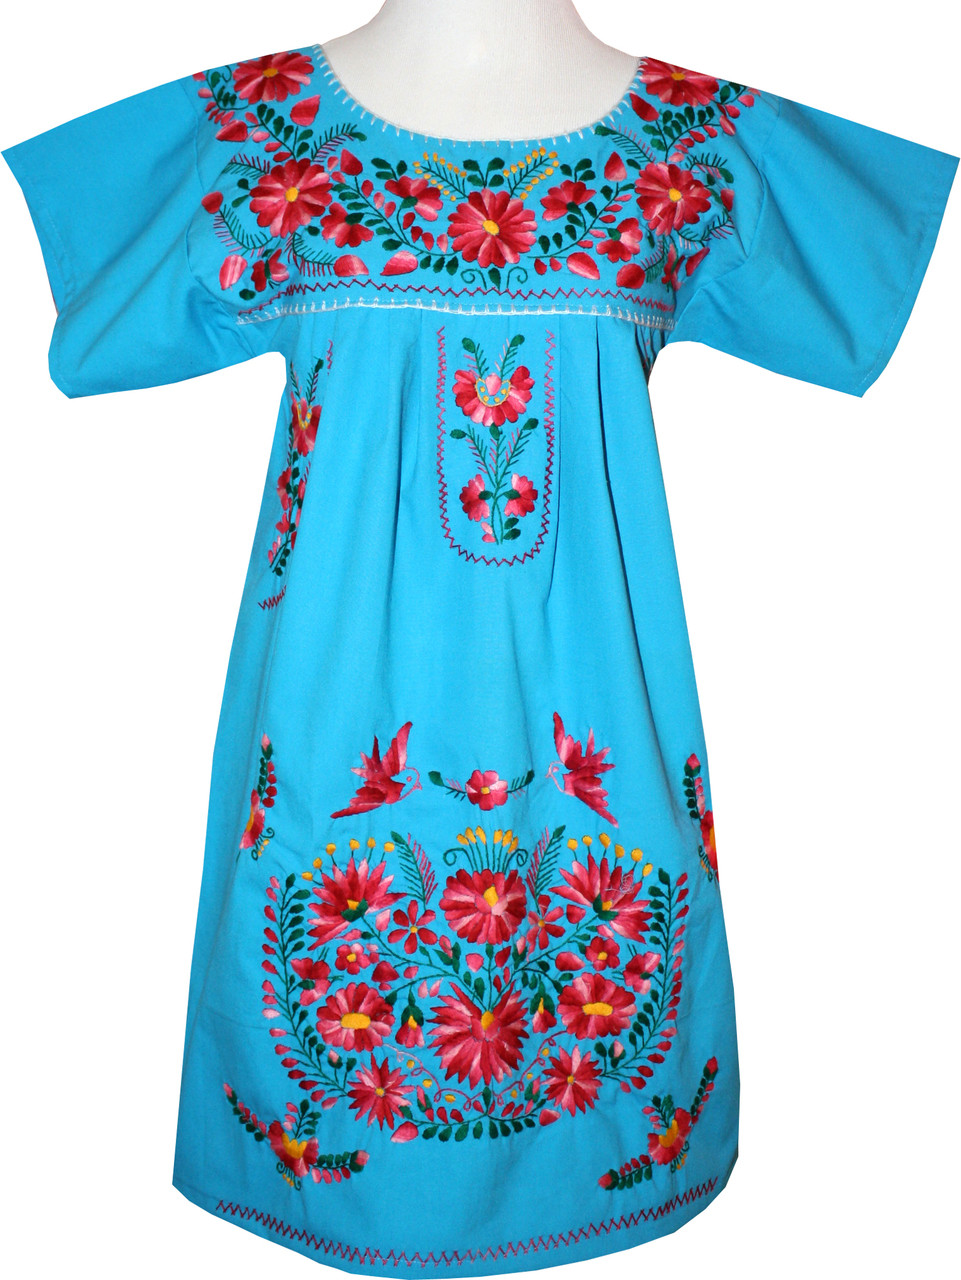 c1051e5a6c Turquoise Mexican Women s Embroidered Dress M - My Mercado Mexican Imports